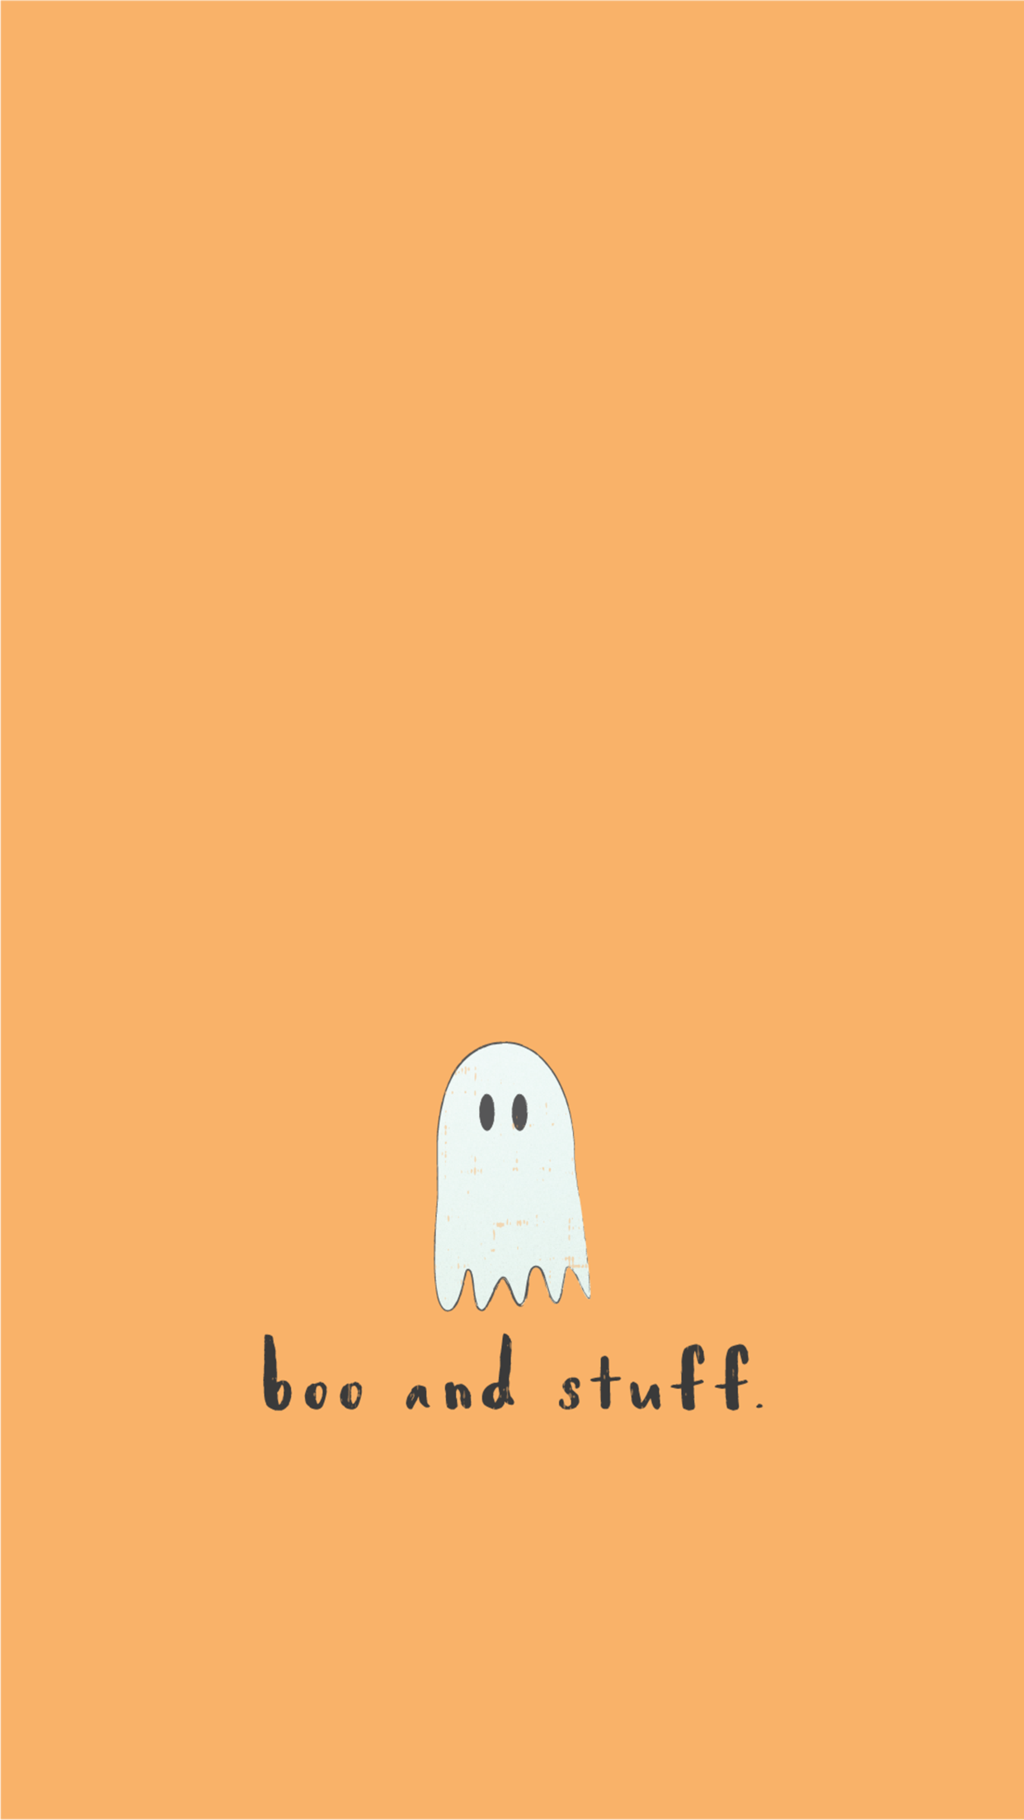 101 Halloween Iphone Wallpapers That Are Both Spooky Awesome